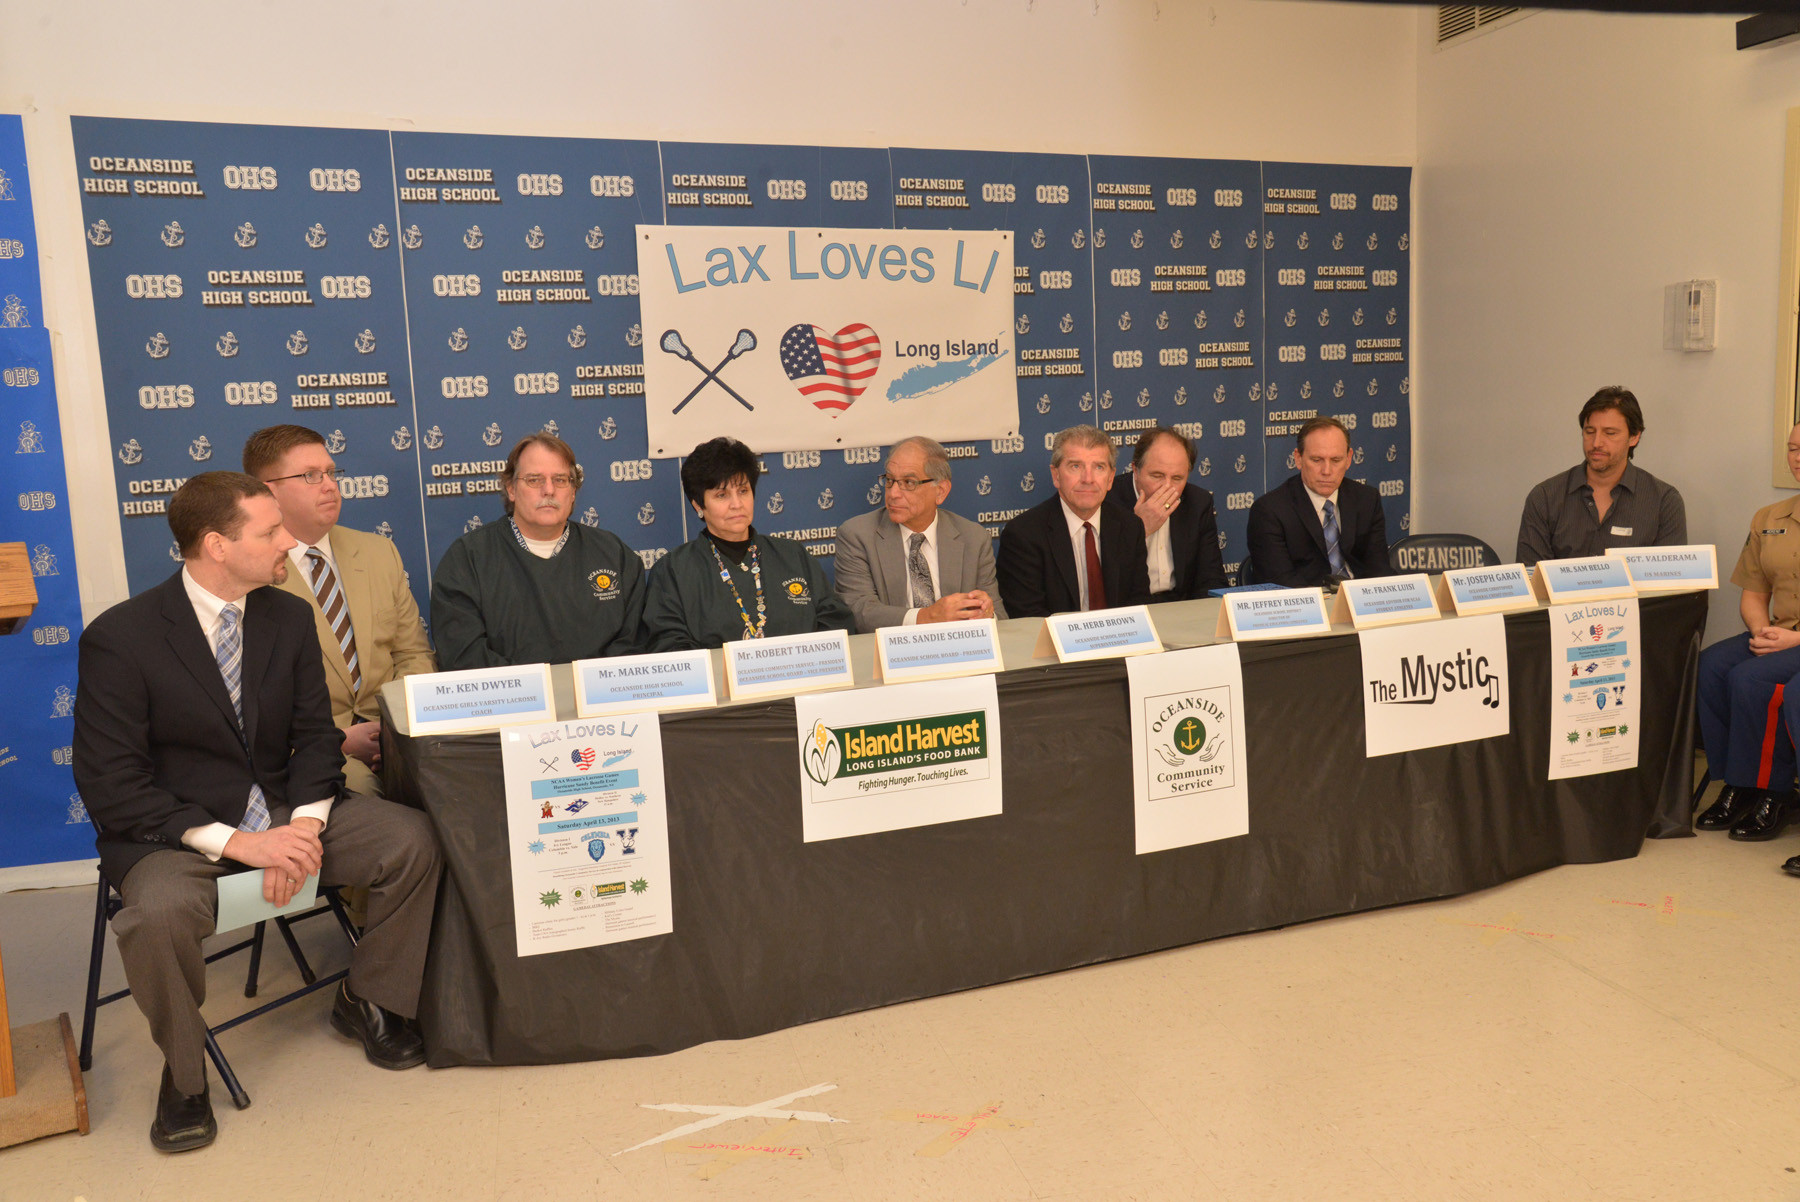 Officials from the sponsors and the various schools that will compete in the fundraiser took part in a press conference at Oceanside High School on March 22.